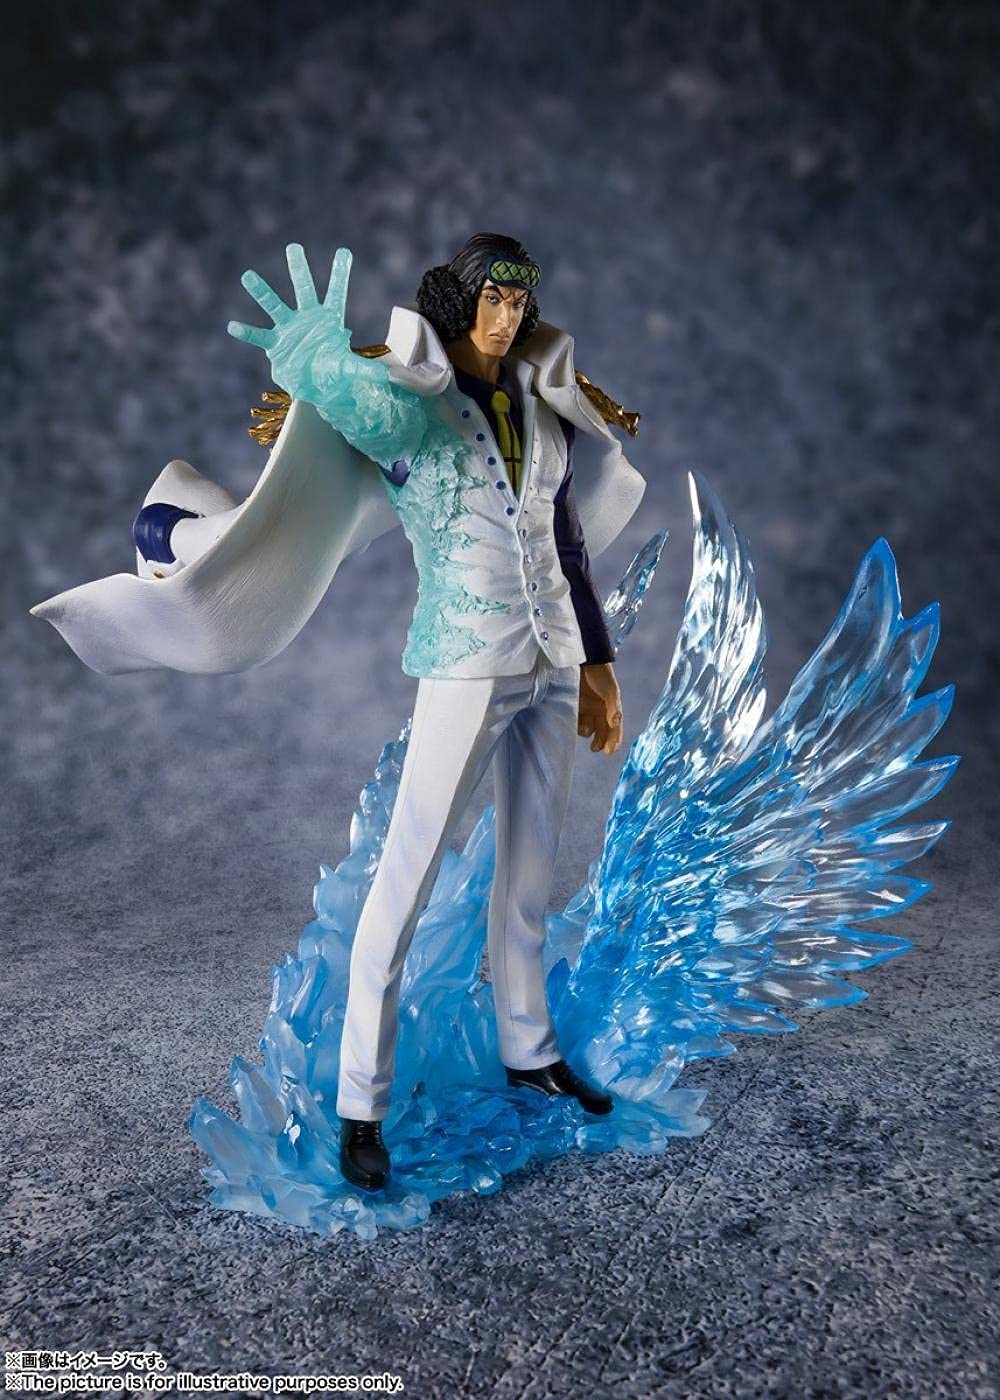 Actions Figures Battle Edition Green Charact 20Cm quality assurance Pheasant Be super welcome Anime